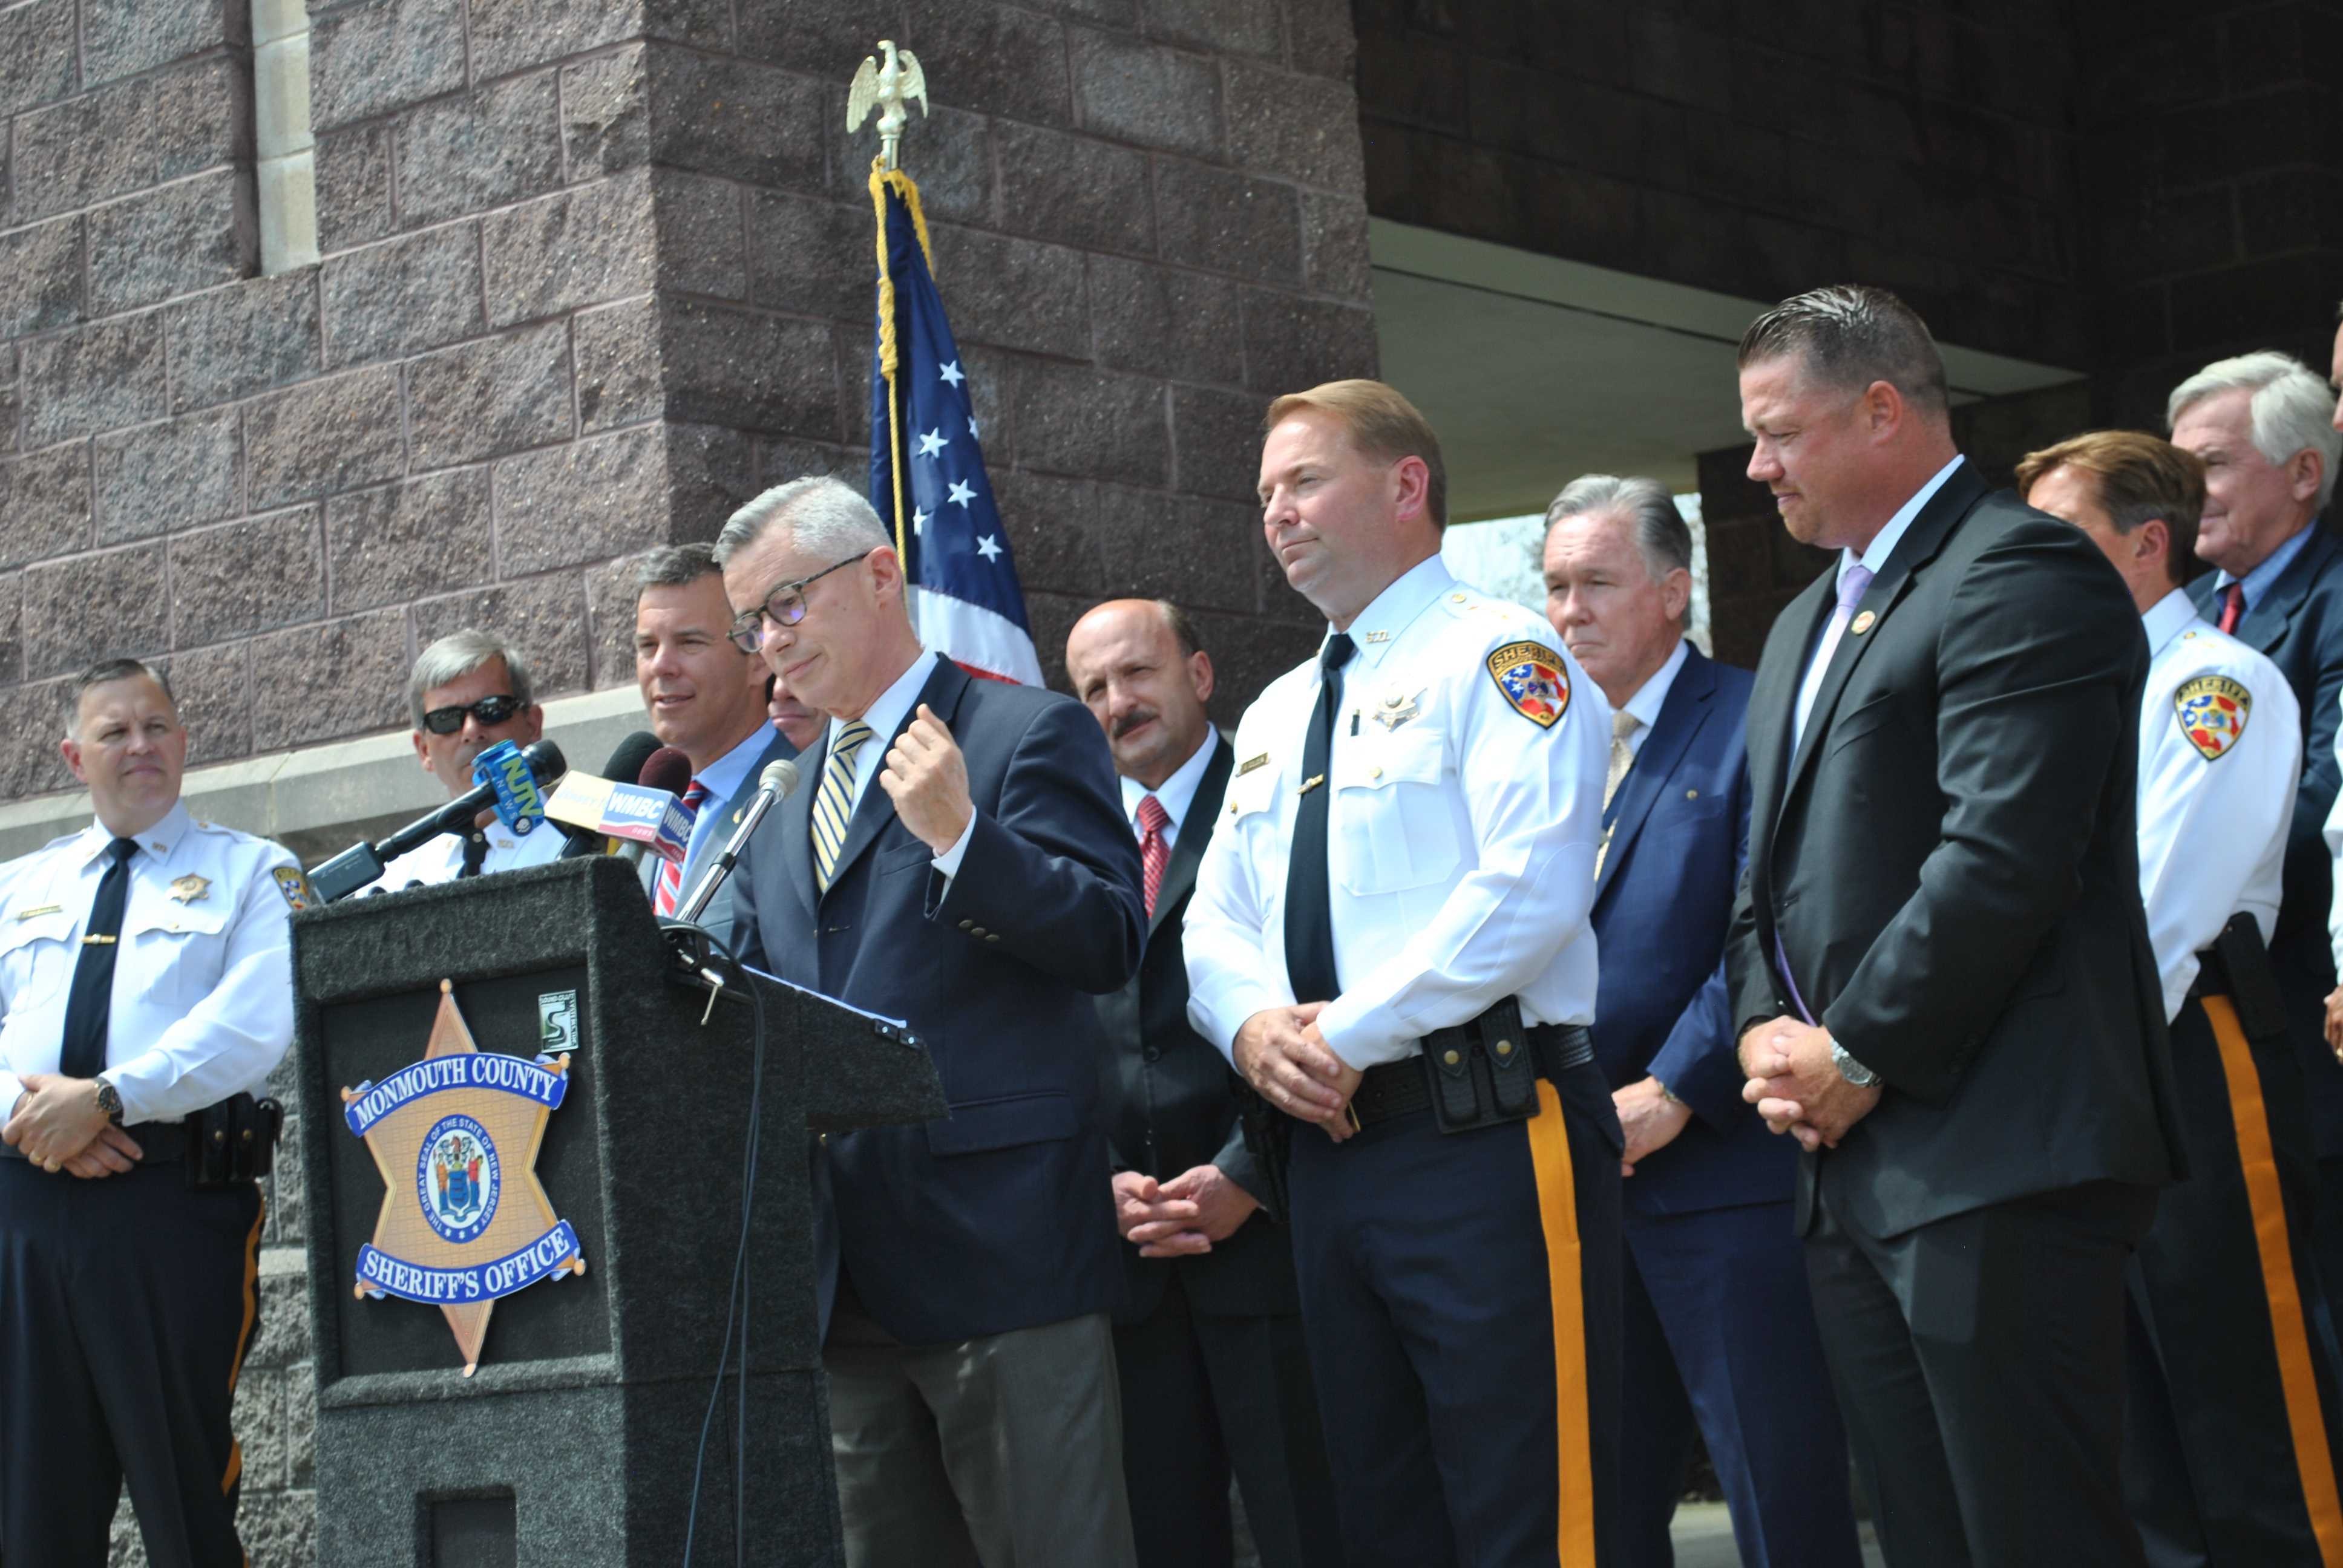 Sheriff, Prosecutor & Partners In Drug Recovery Services